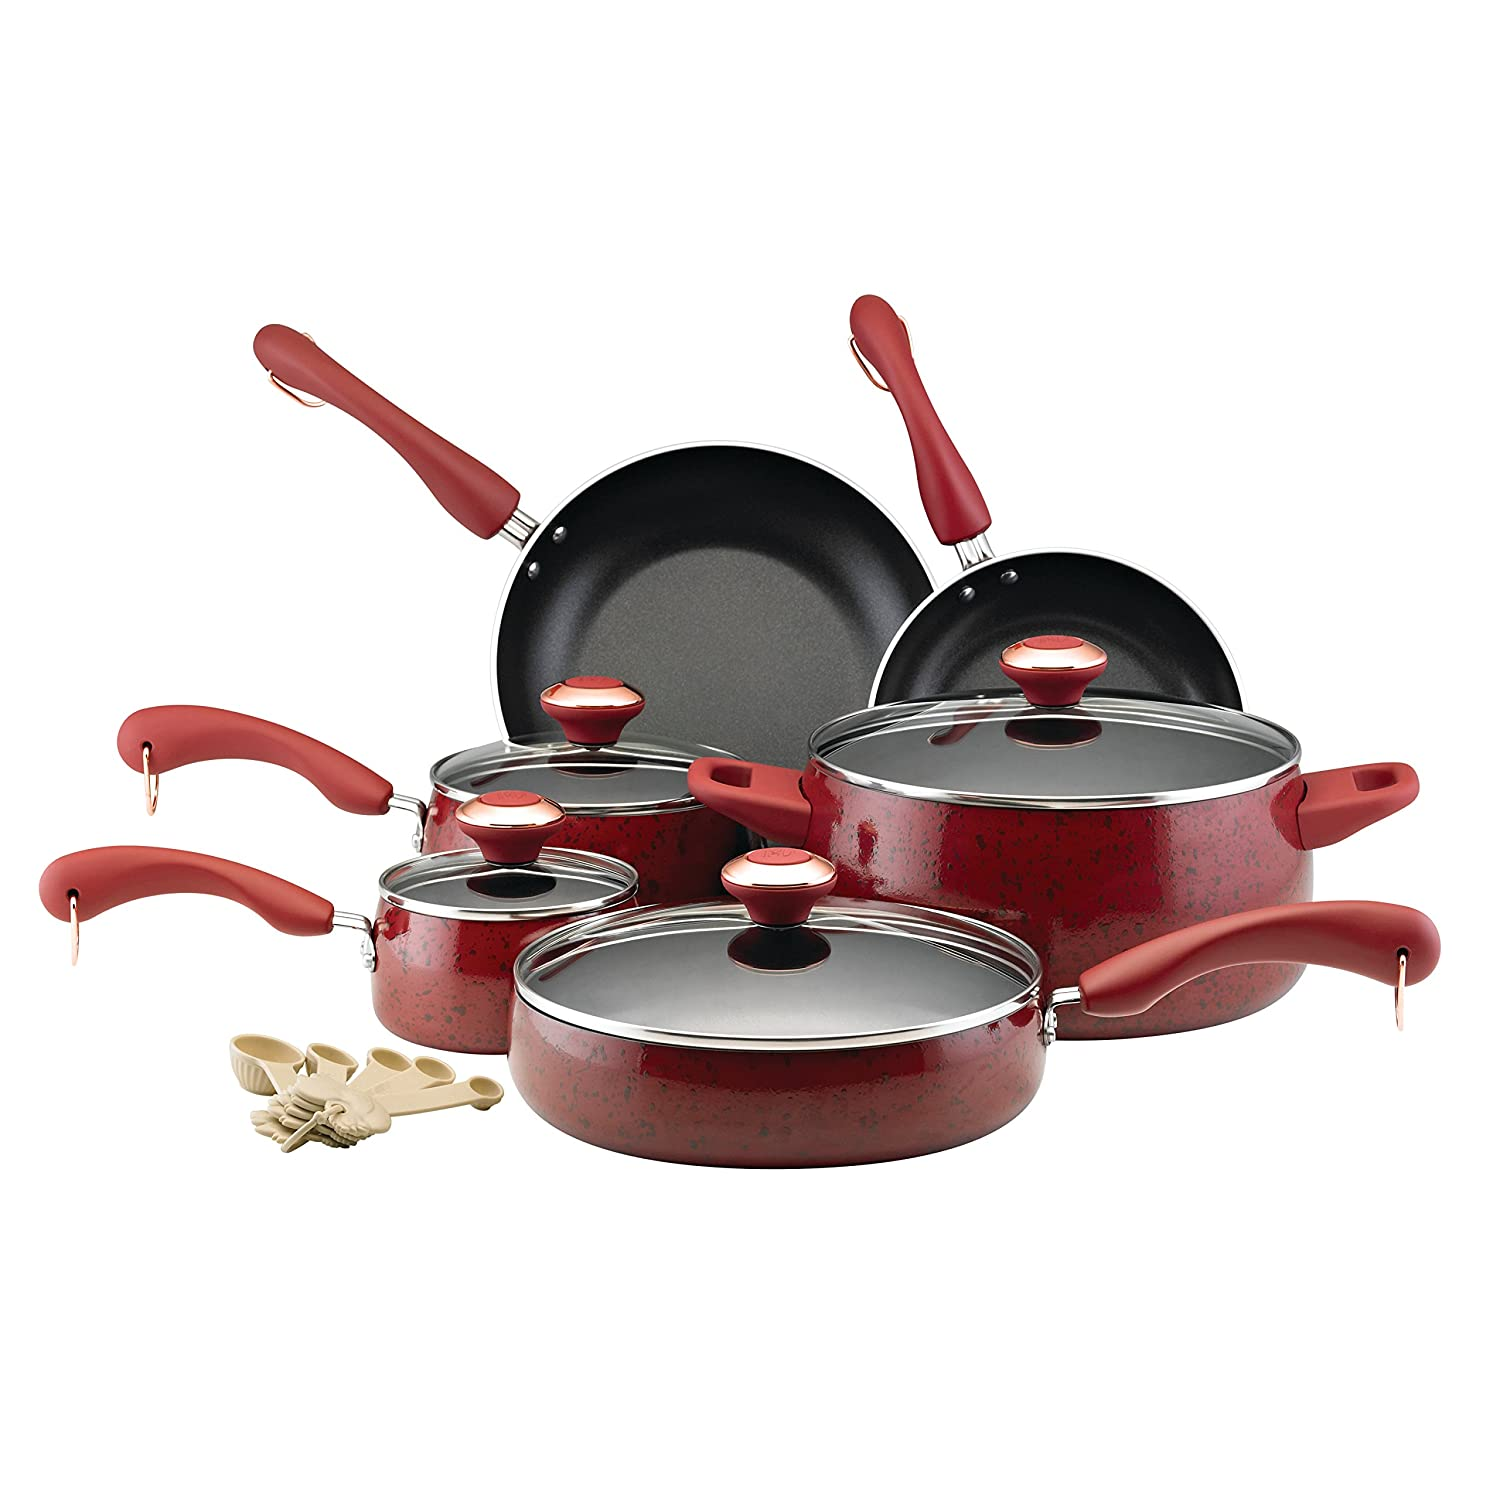 Paula Deen 12512 Signature Nonstick 15-Piece Porcelain Cookware Set Meyer Corporation